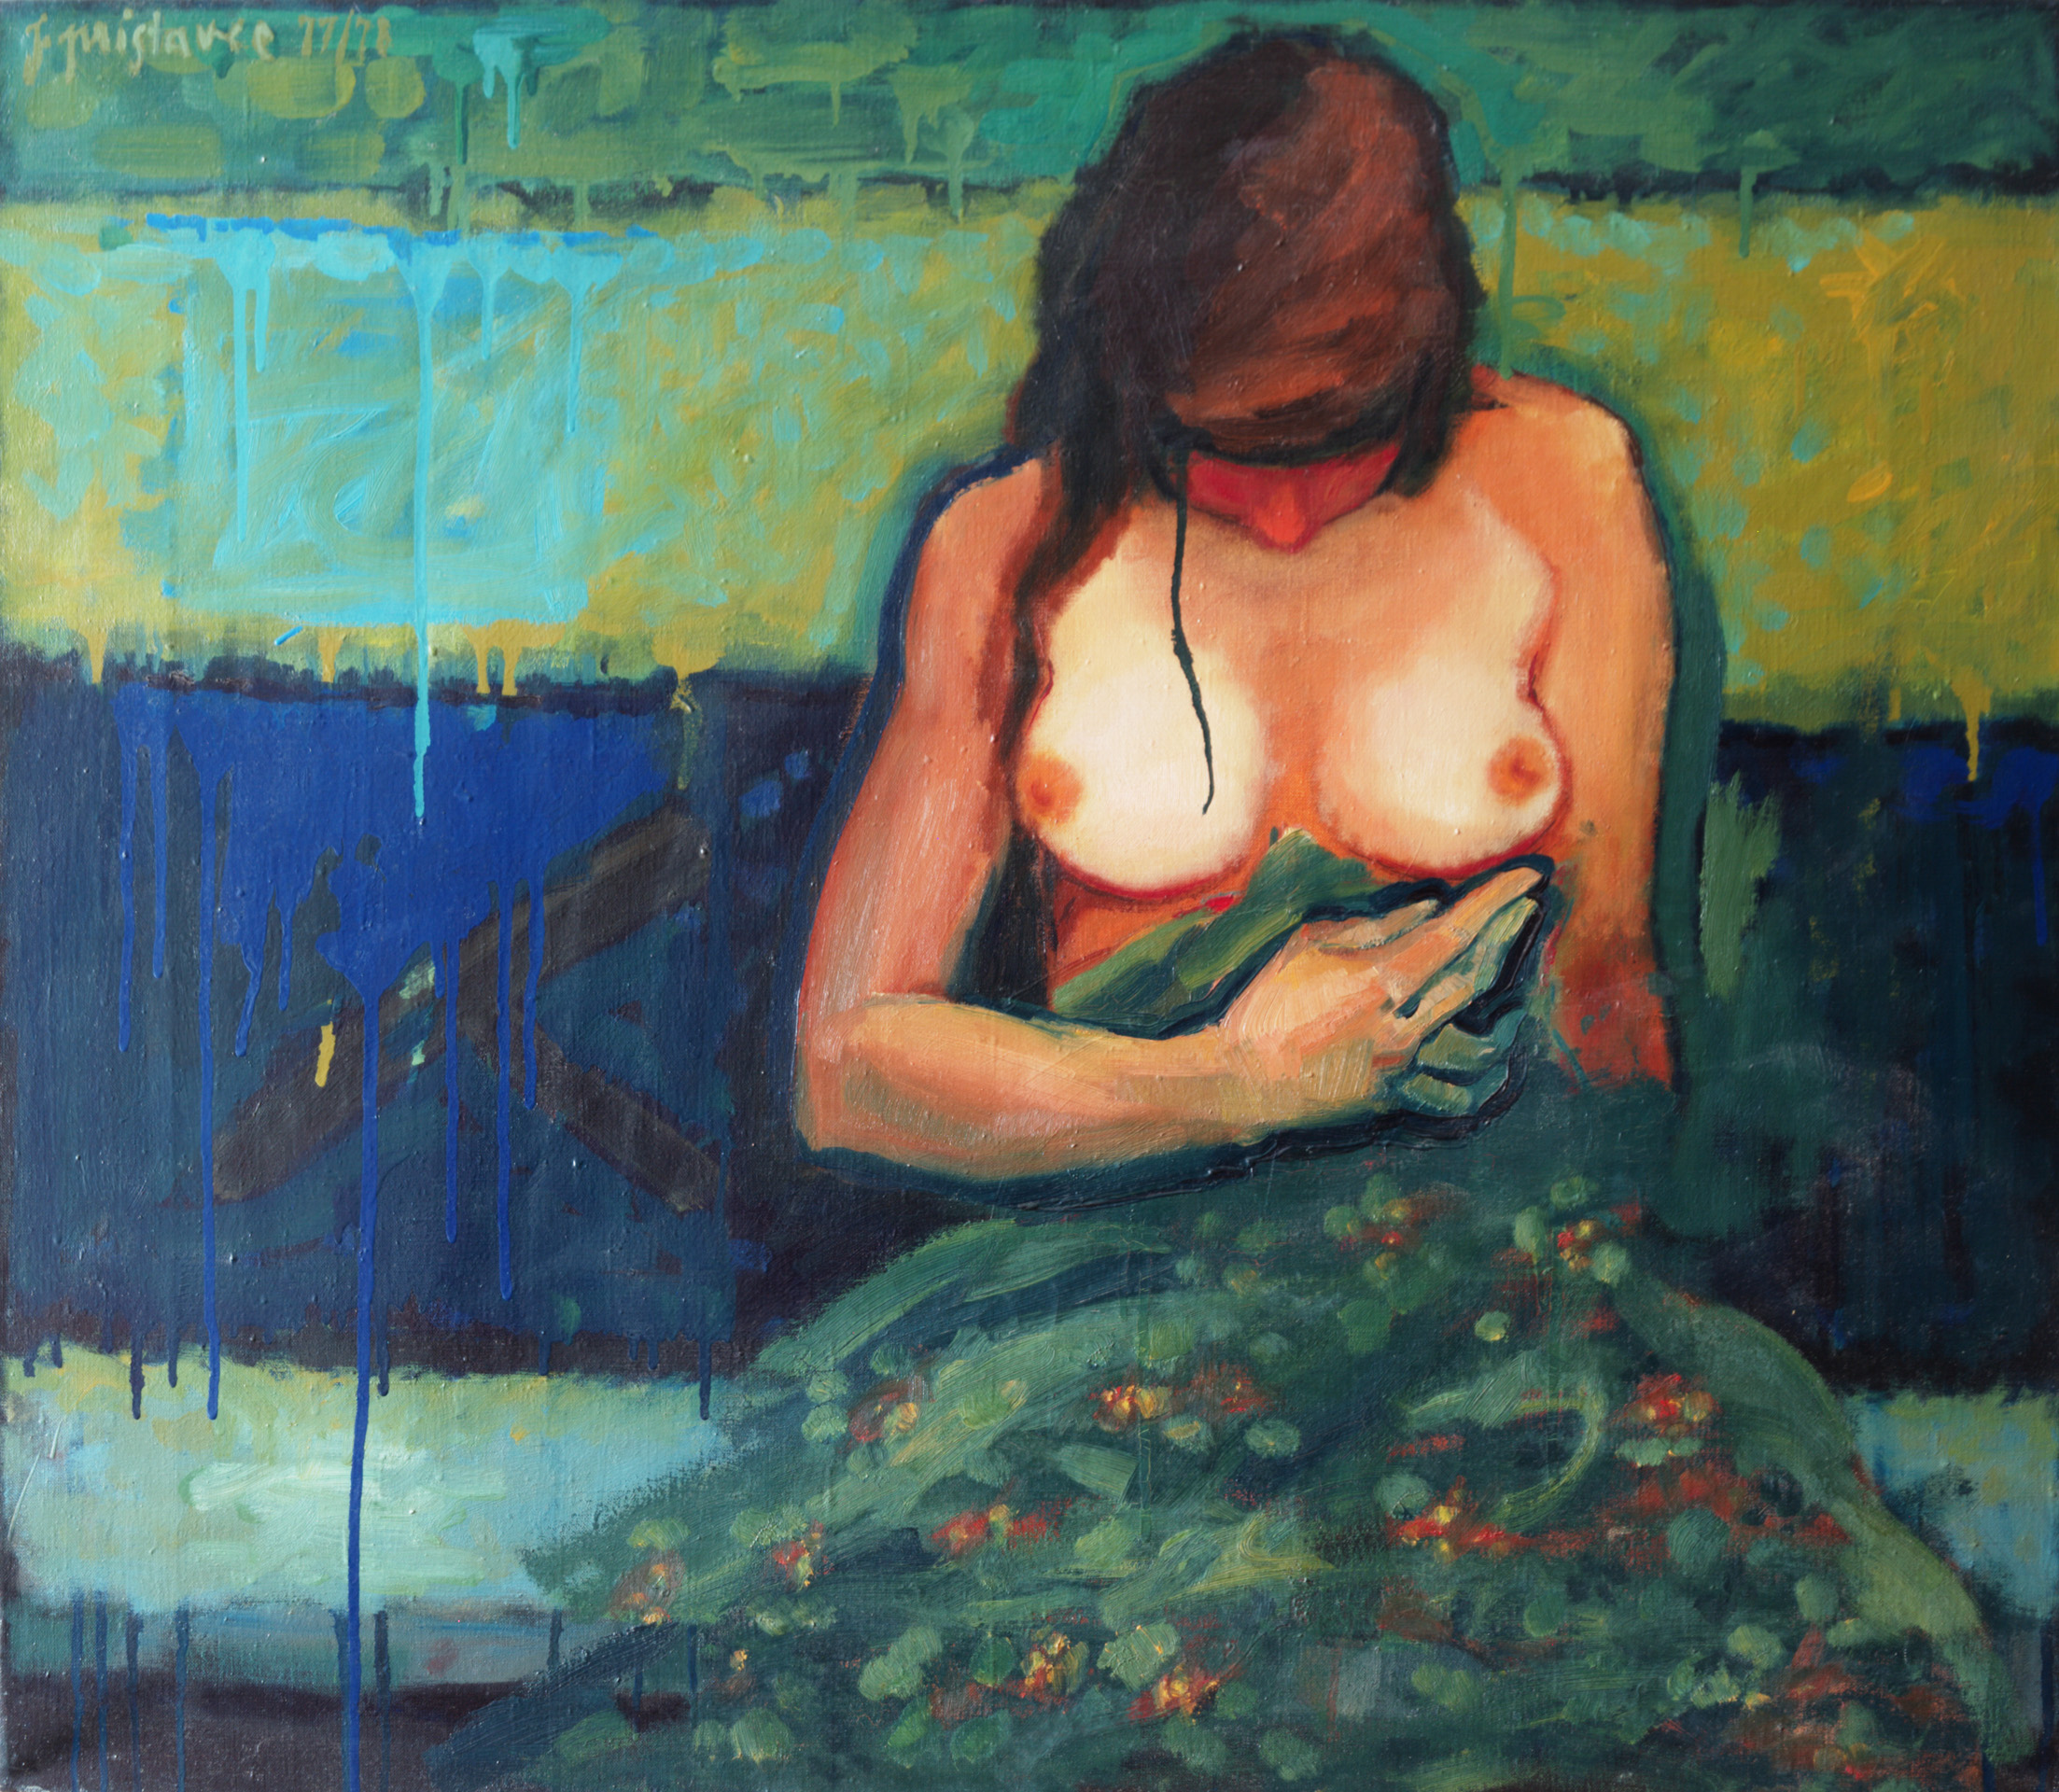 In Bed  / 1978 / oil on canvas / 80 x 70 cm